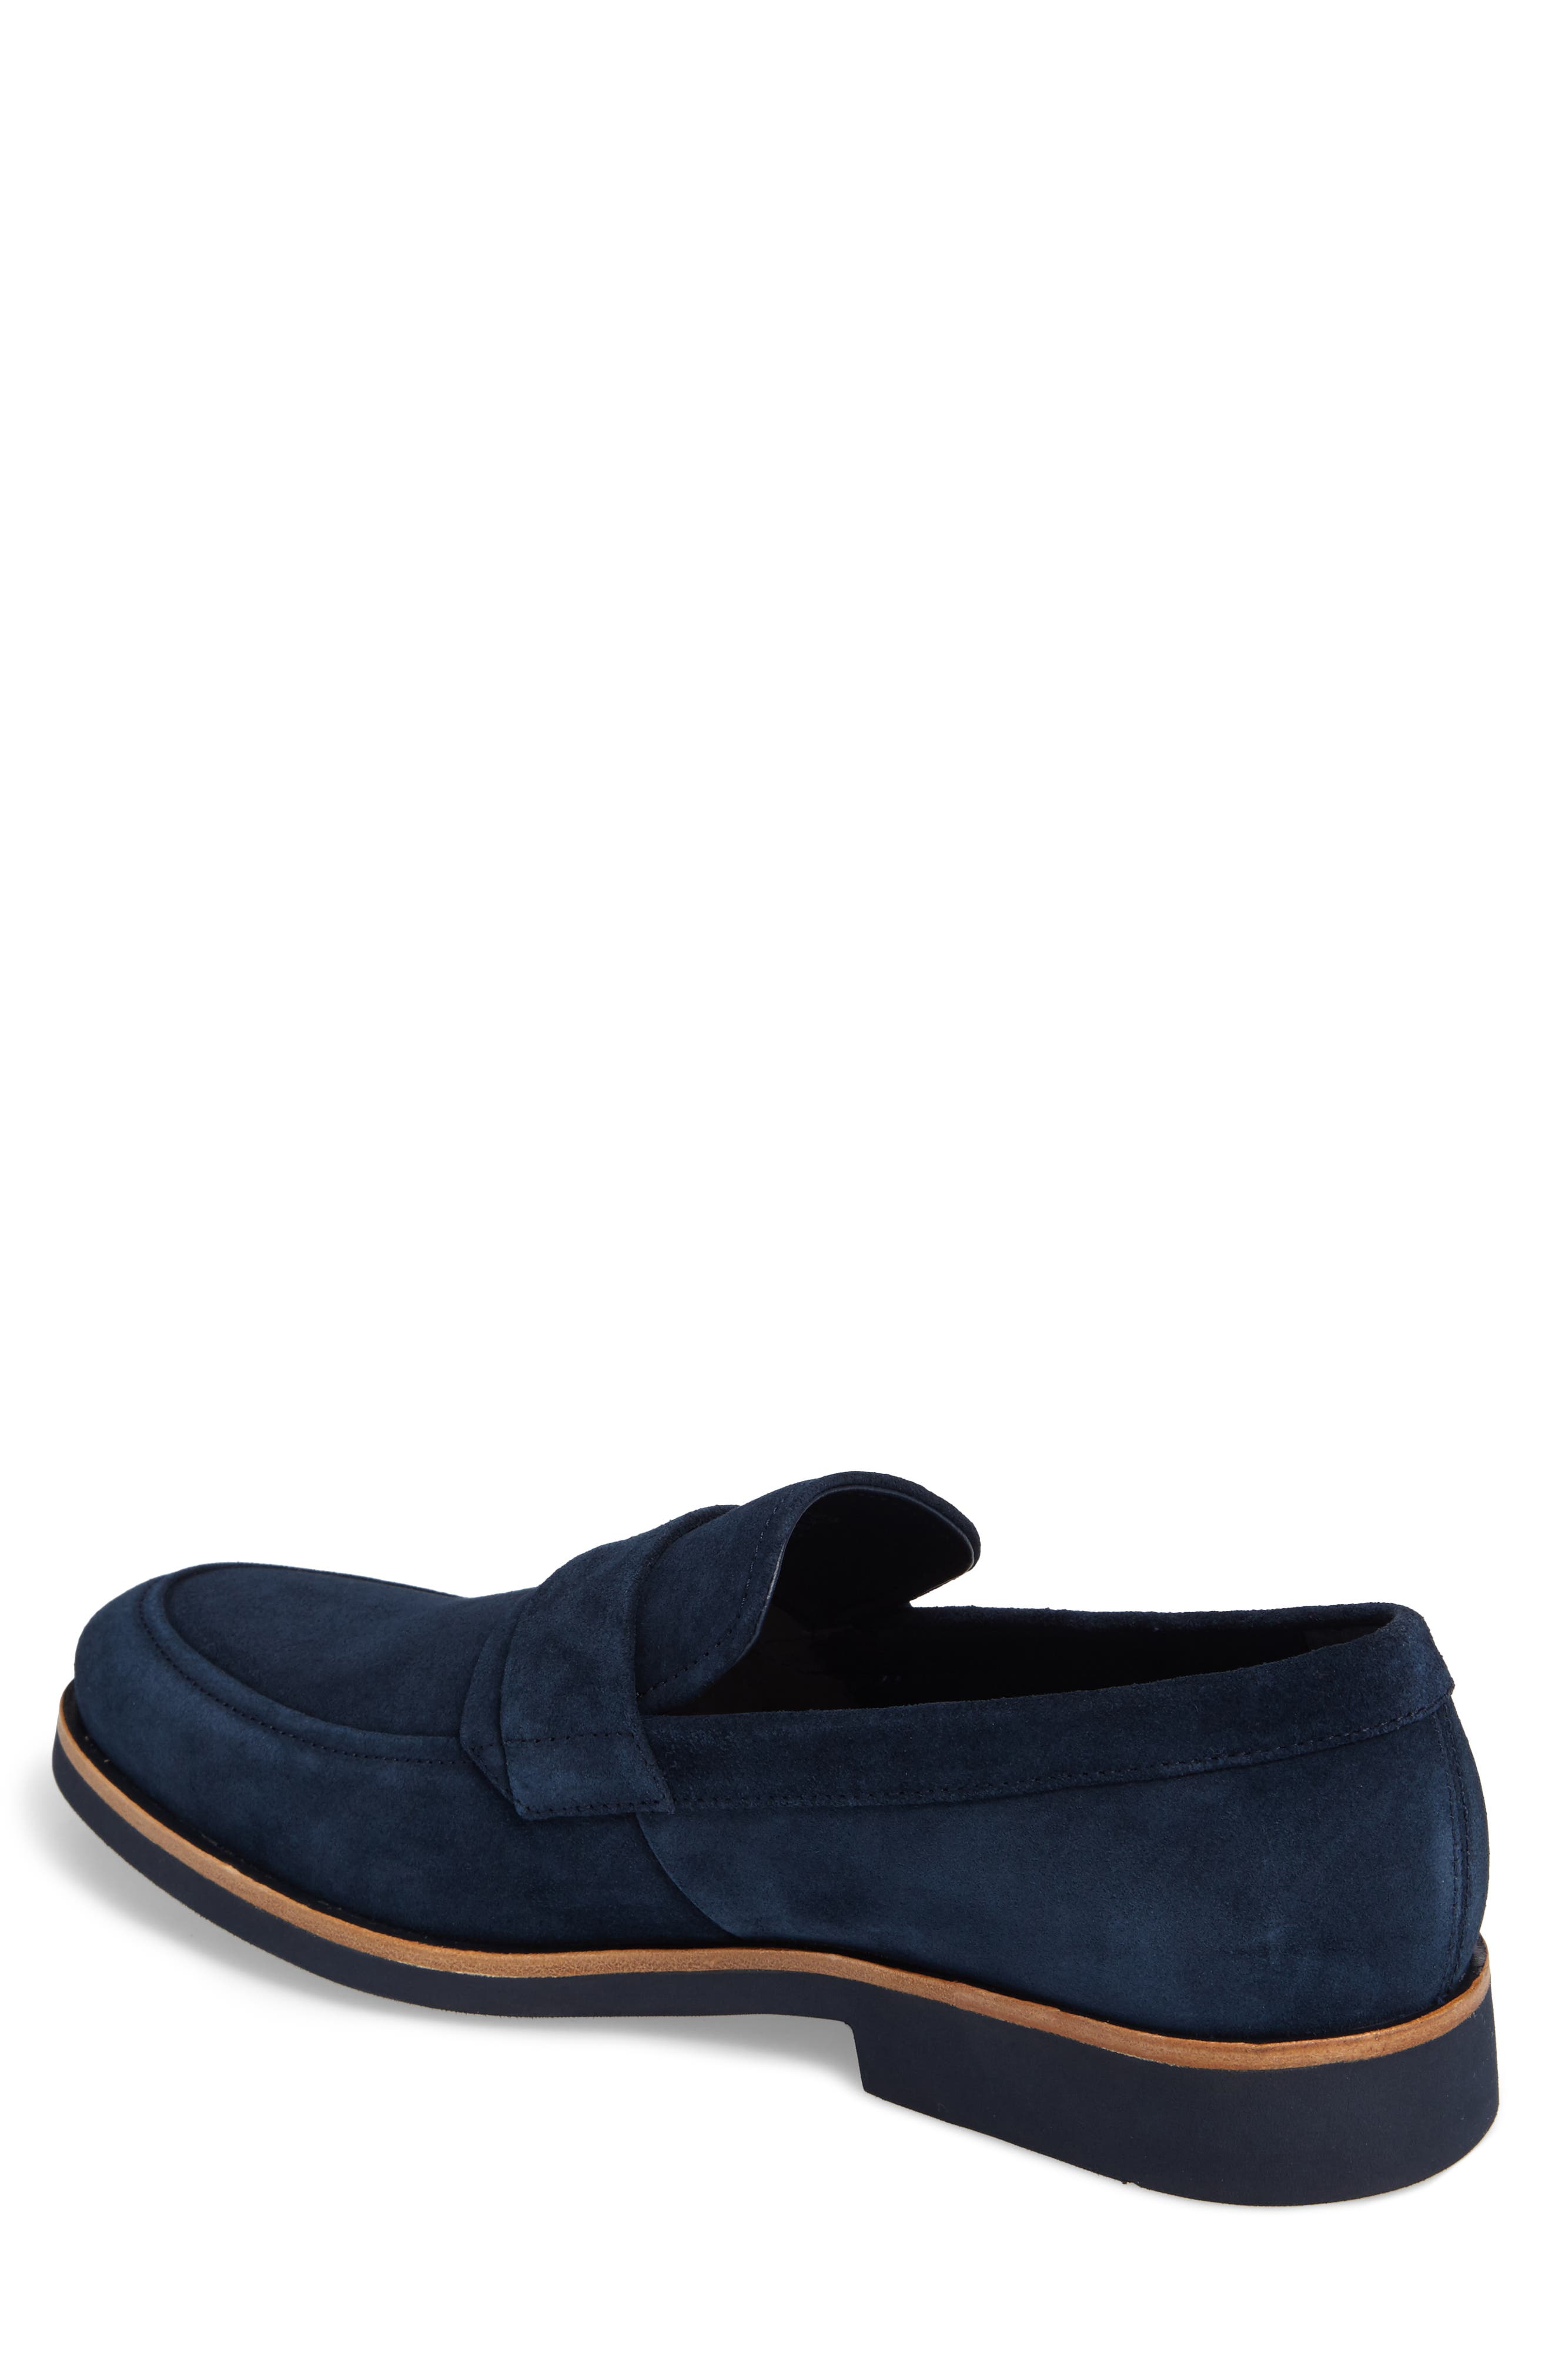 Forbes Loafer,                             Alternate thumbnail 6, color,